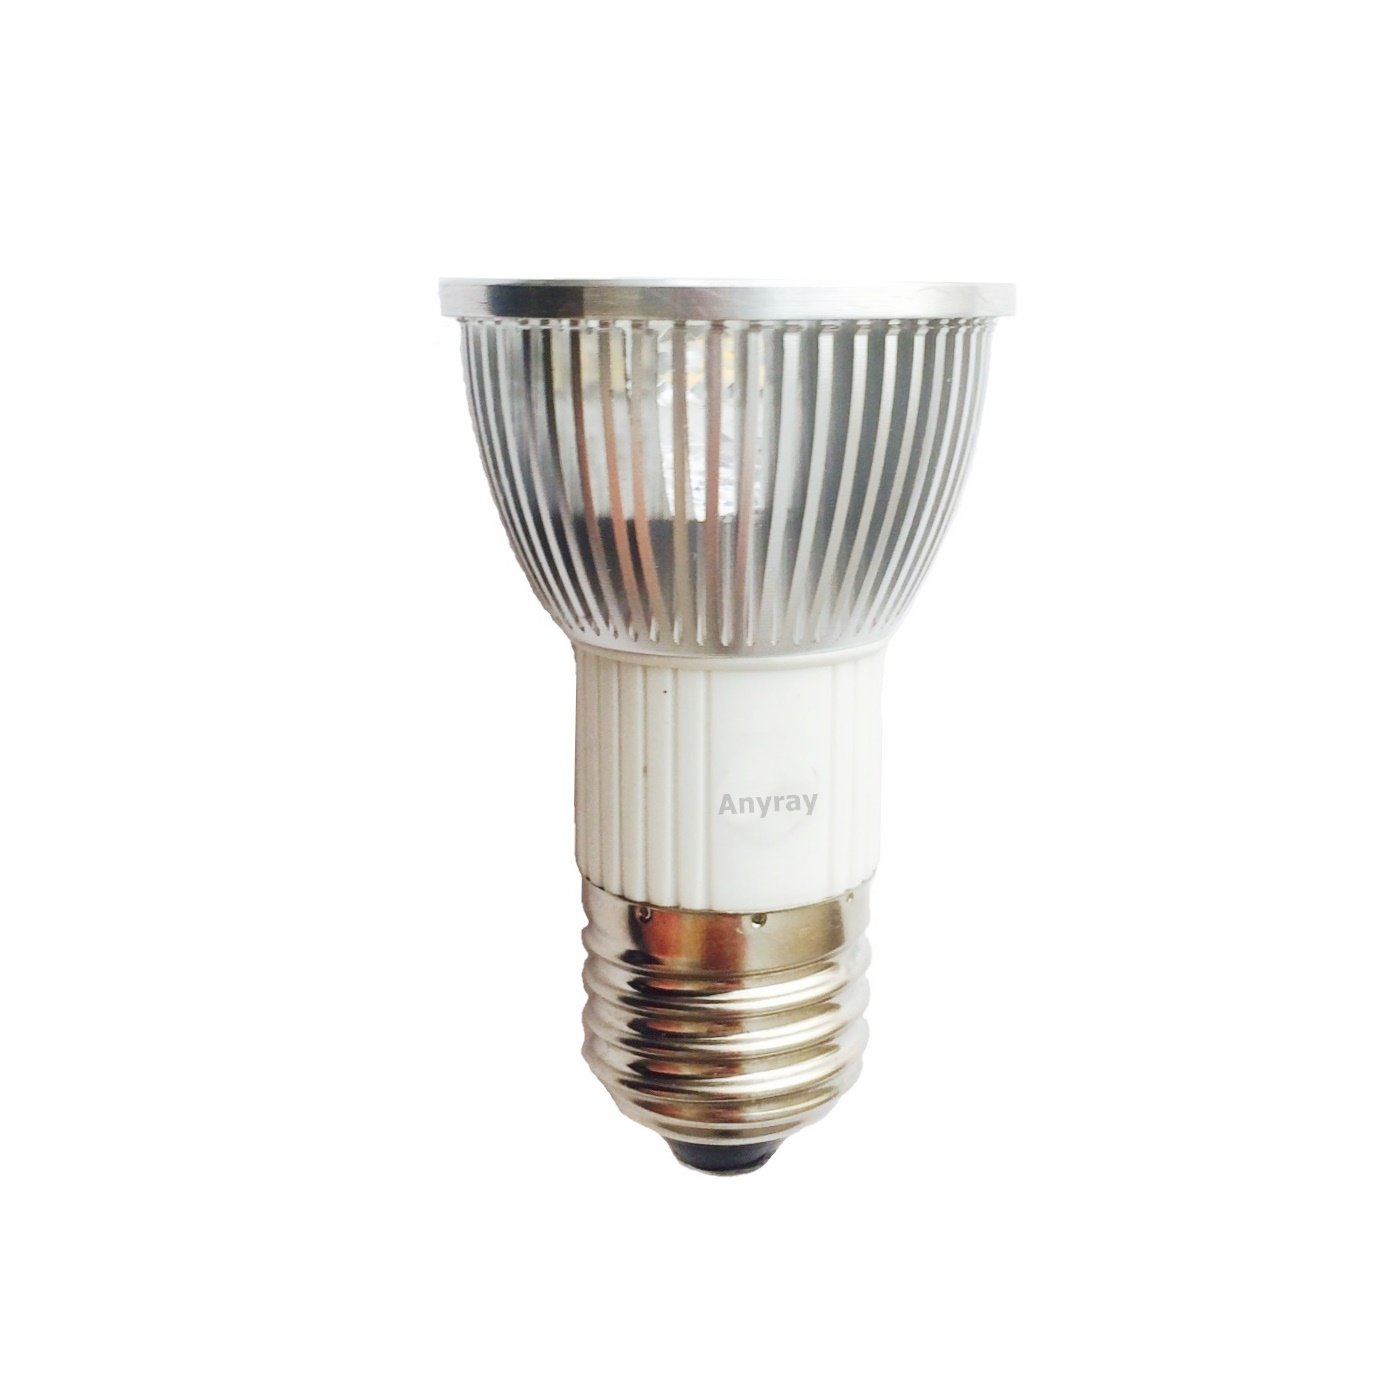 50 watt led replacement bulb for kitchen range hood bulb european